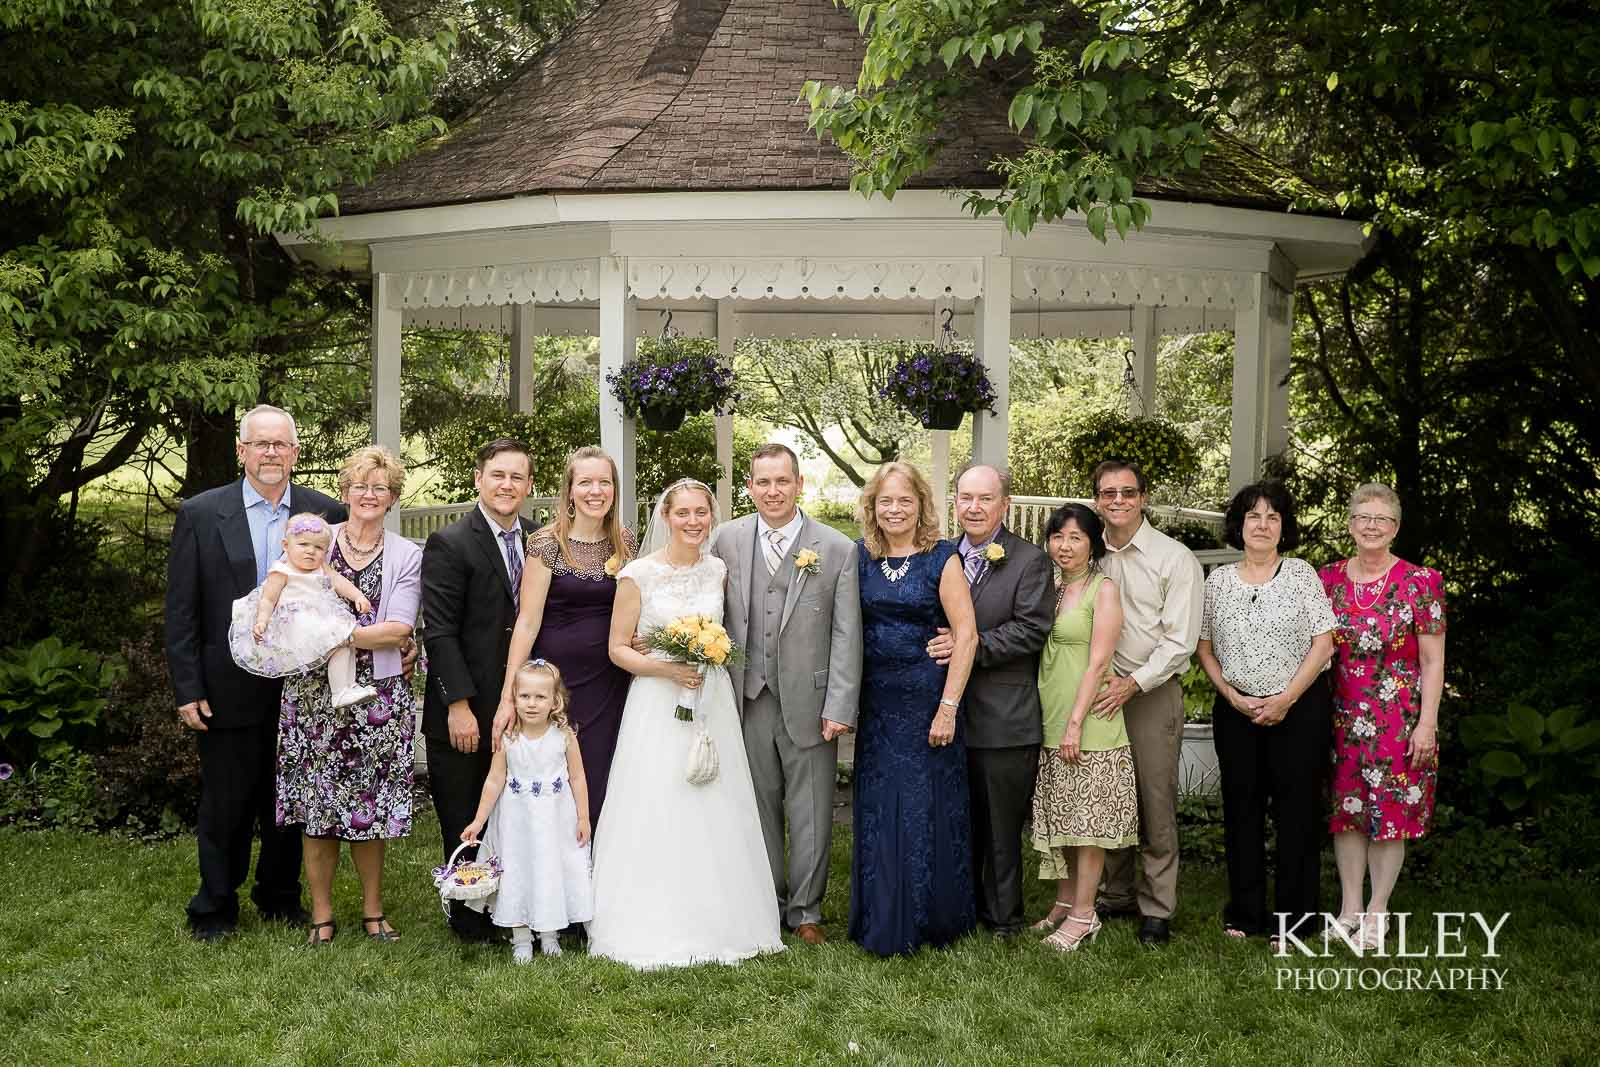 34-Plantation-Party-House-springtime-wedding-Rochester-NY-Kniley-Photography.jpg